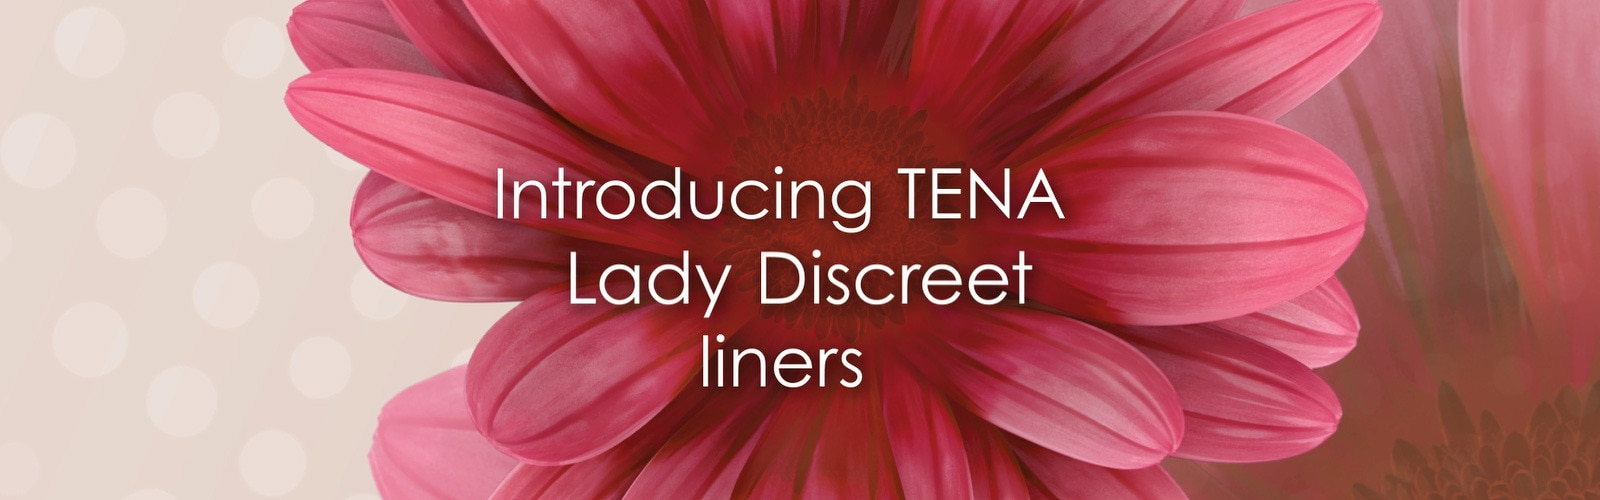 Introducing new TENA Lady Discreet Liners